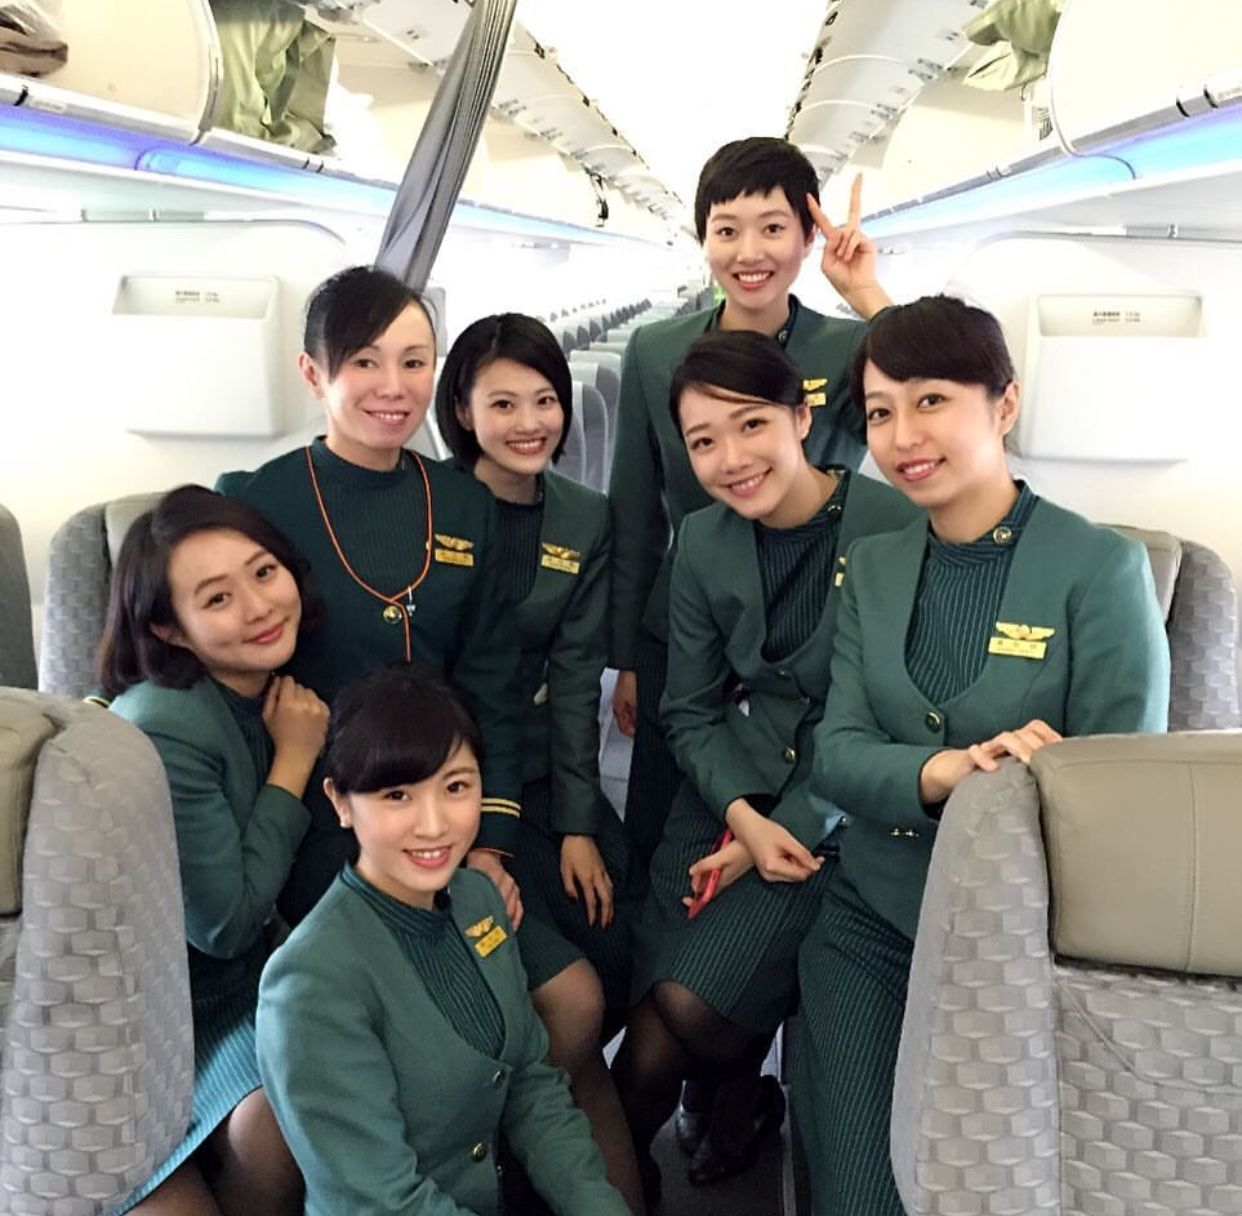 Air France Flight Attendant Cover Letter 台湾エバー航空 長榮航空 客室乗務員旧制服 Eva Air Cabin Crew Old